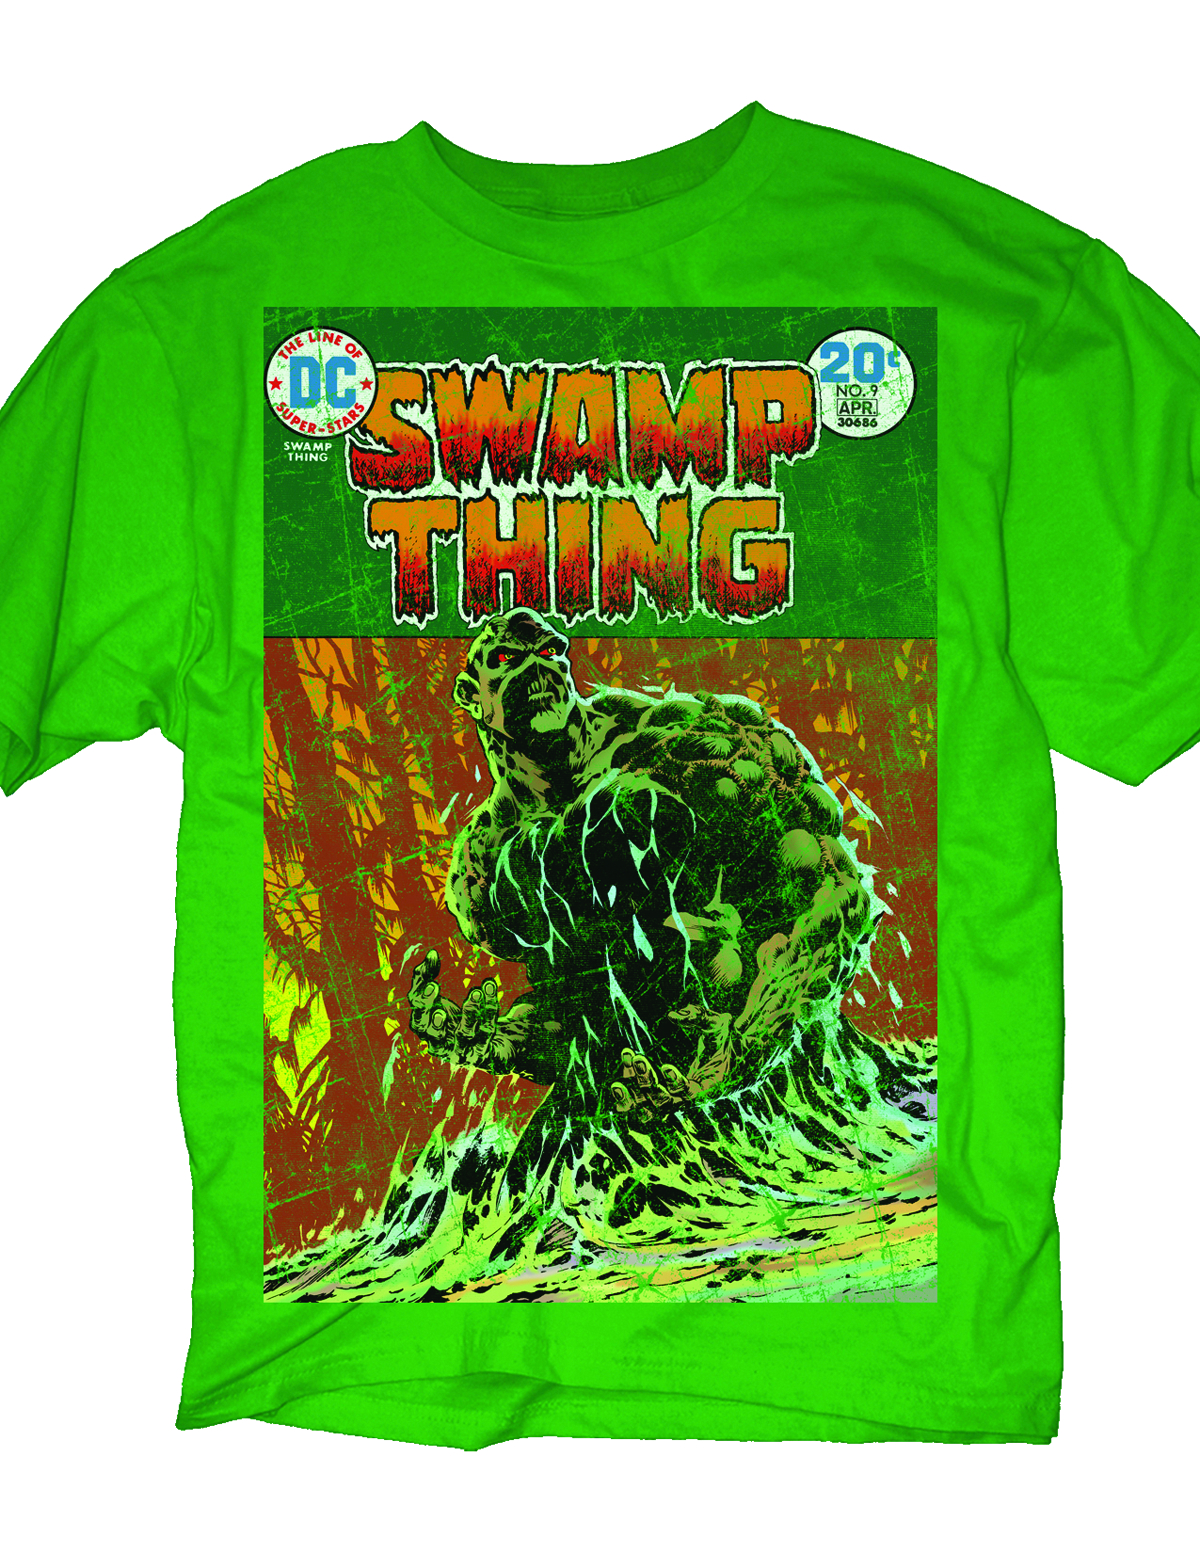 DC HEROES SWAMP THING COVER PX GREEN T/S SM